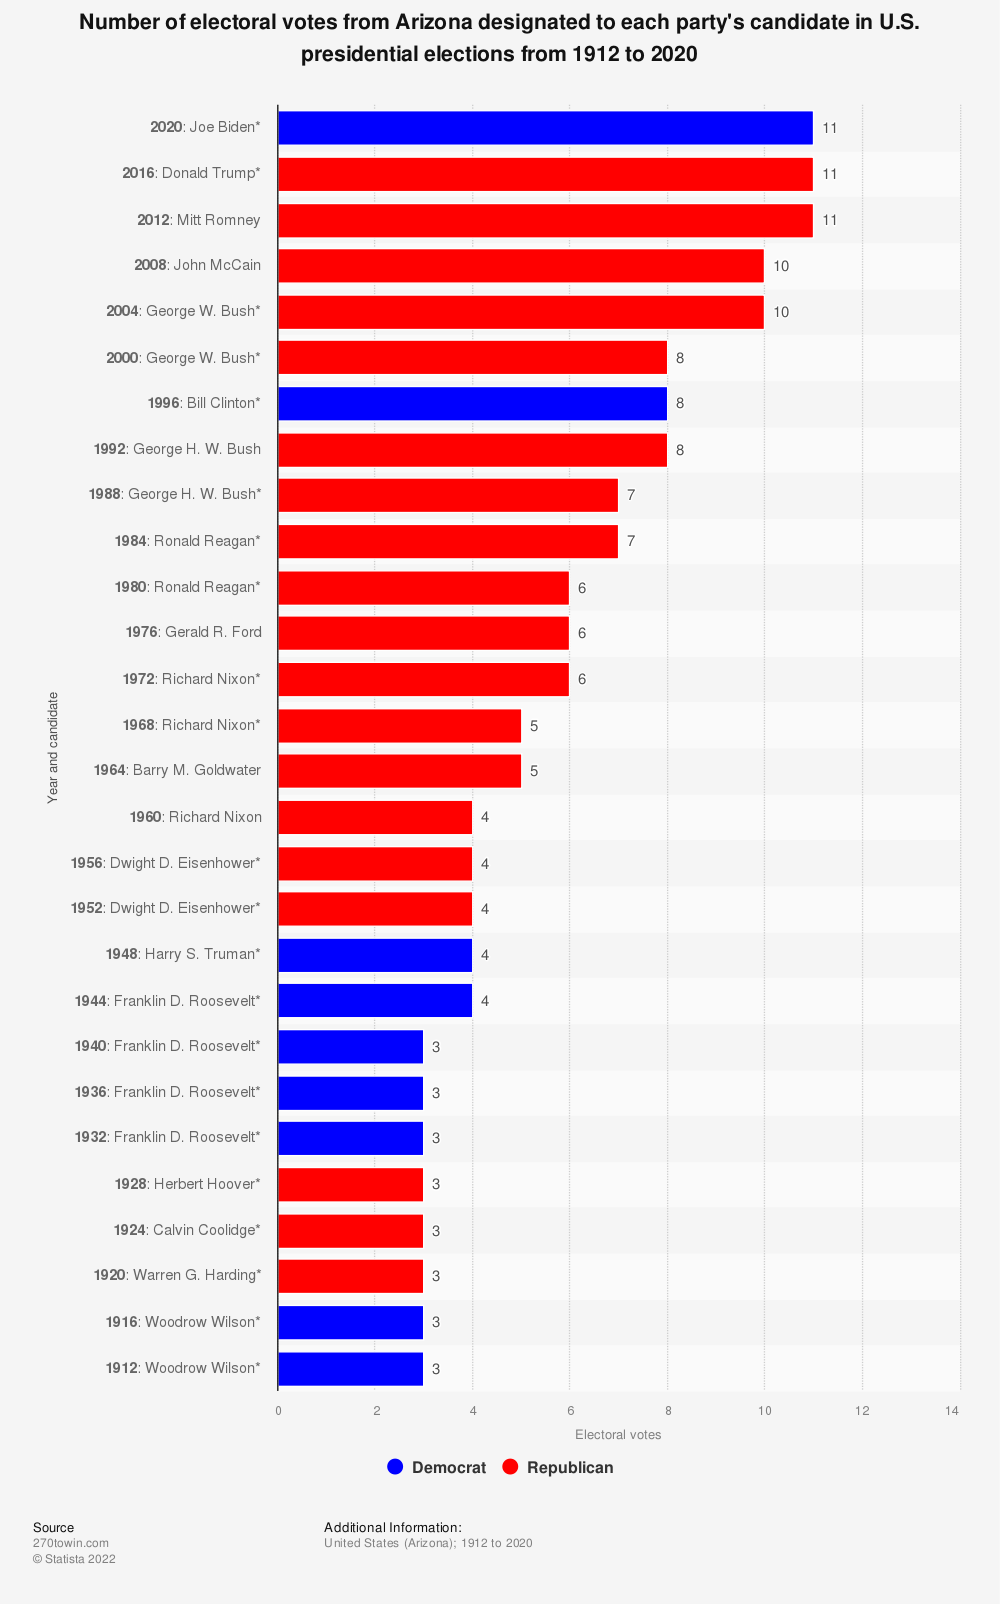 Statistic: Number of electoral votes from Arizona designated to each party's candidate in U.S. presidential elections from 1912 to 2020 | Statista